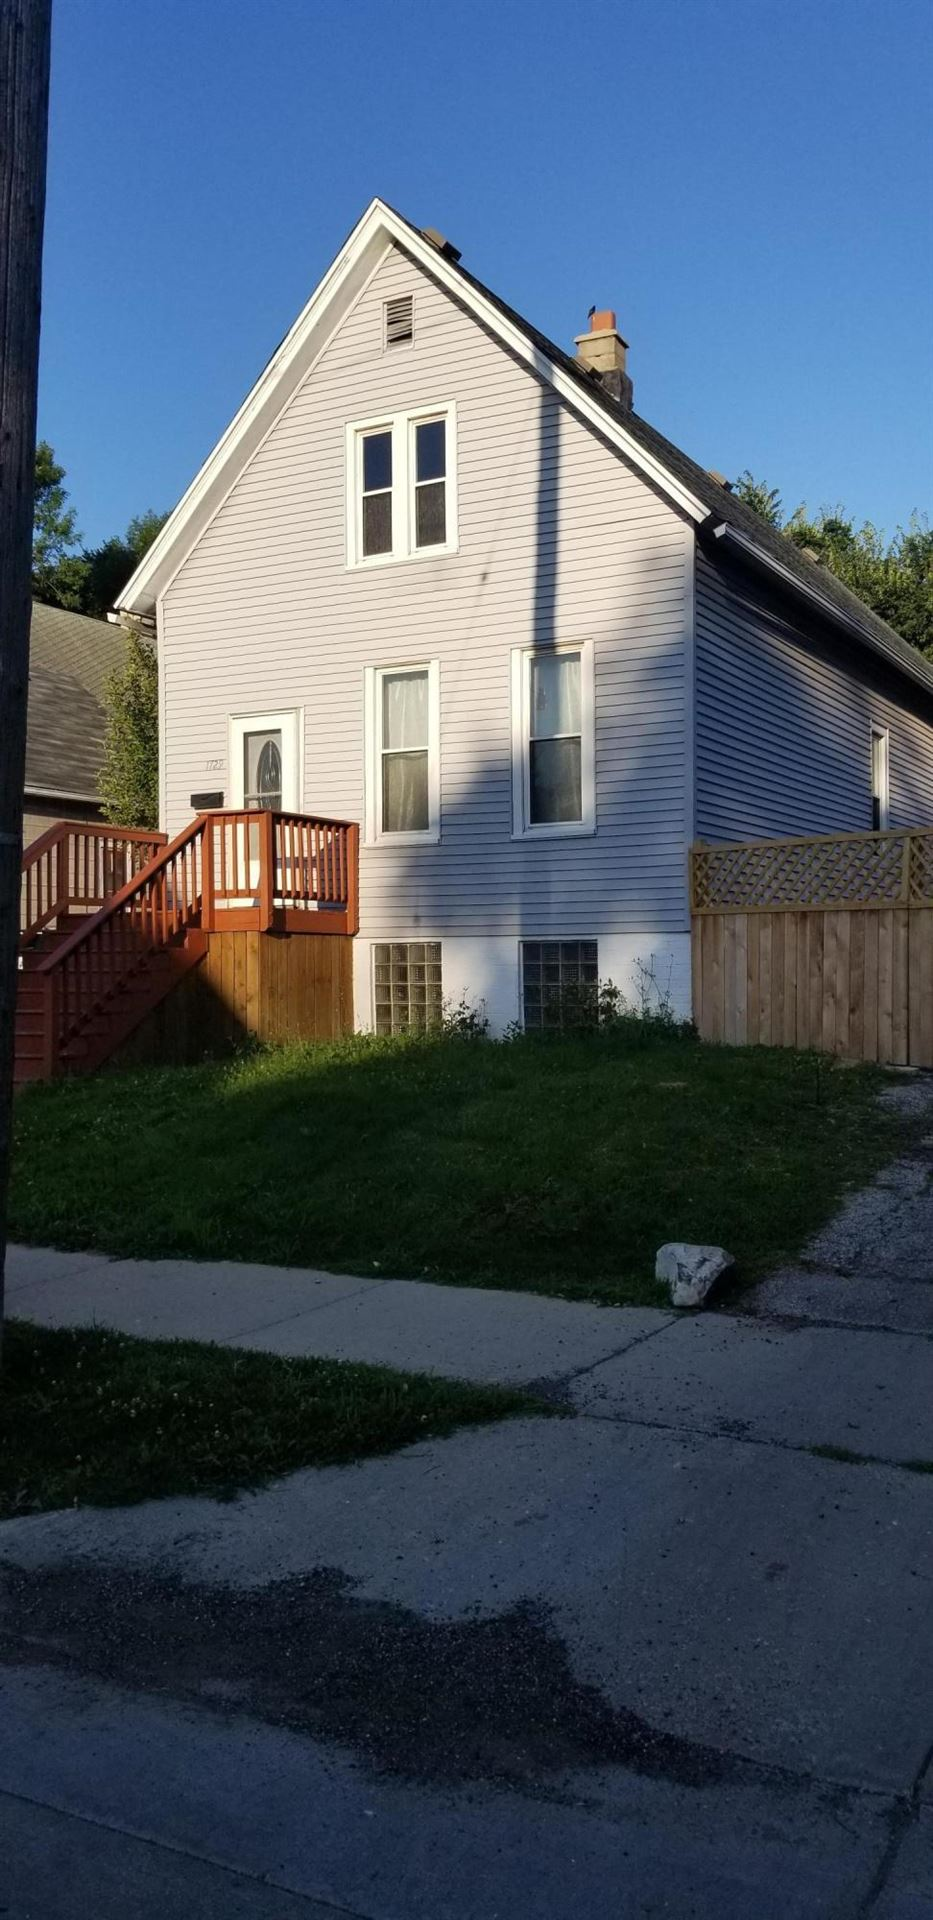 1729 S 18th St, Milwaukee, WI 53204 - #: 1687311